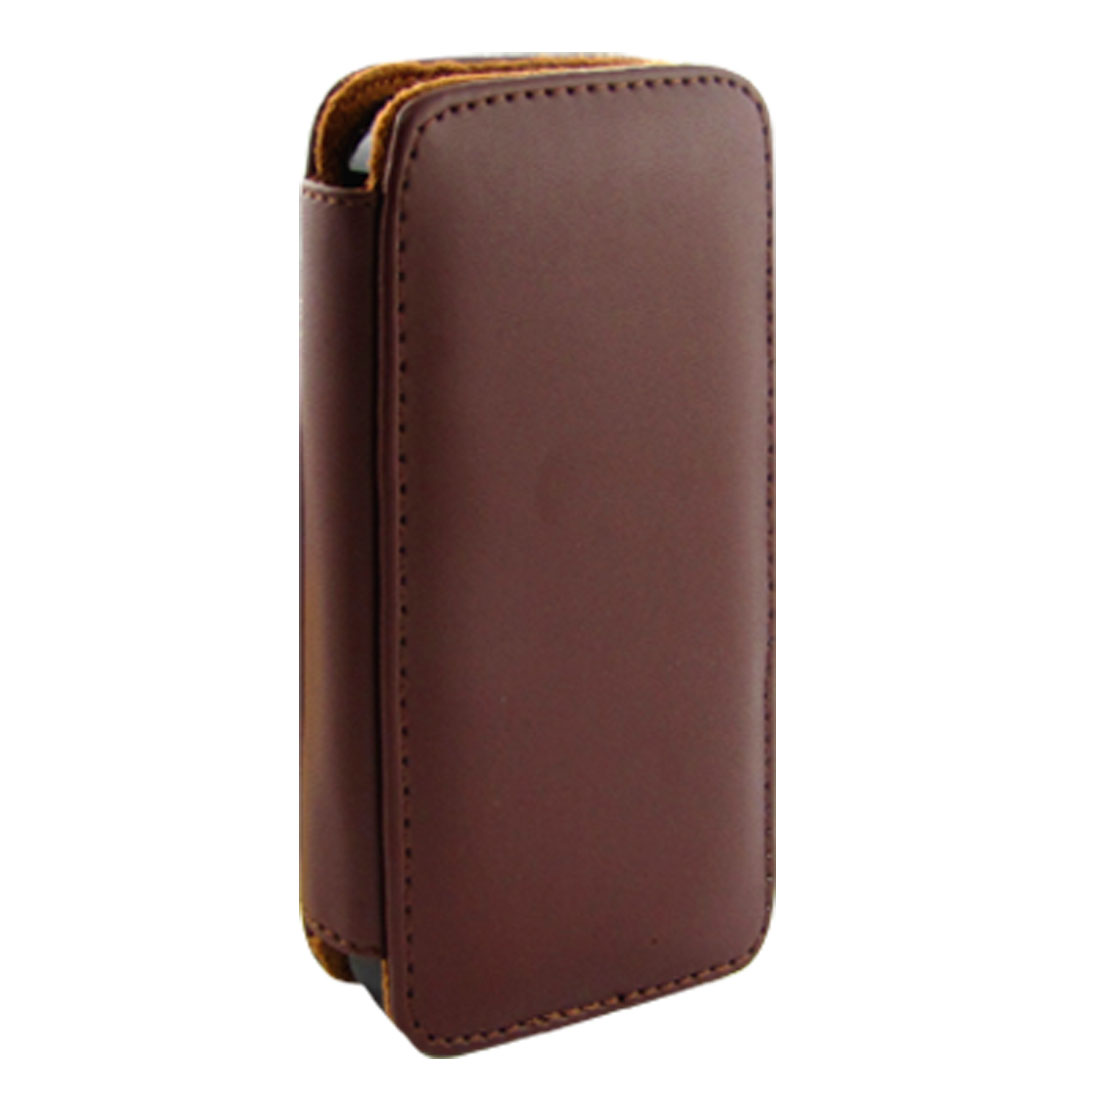 Brown Faux Leather Flip Style Pouch Cover for iPhone 4